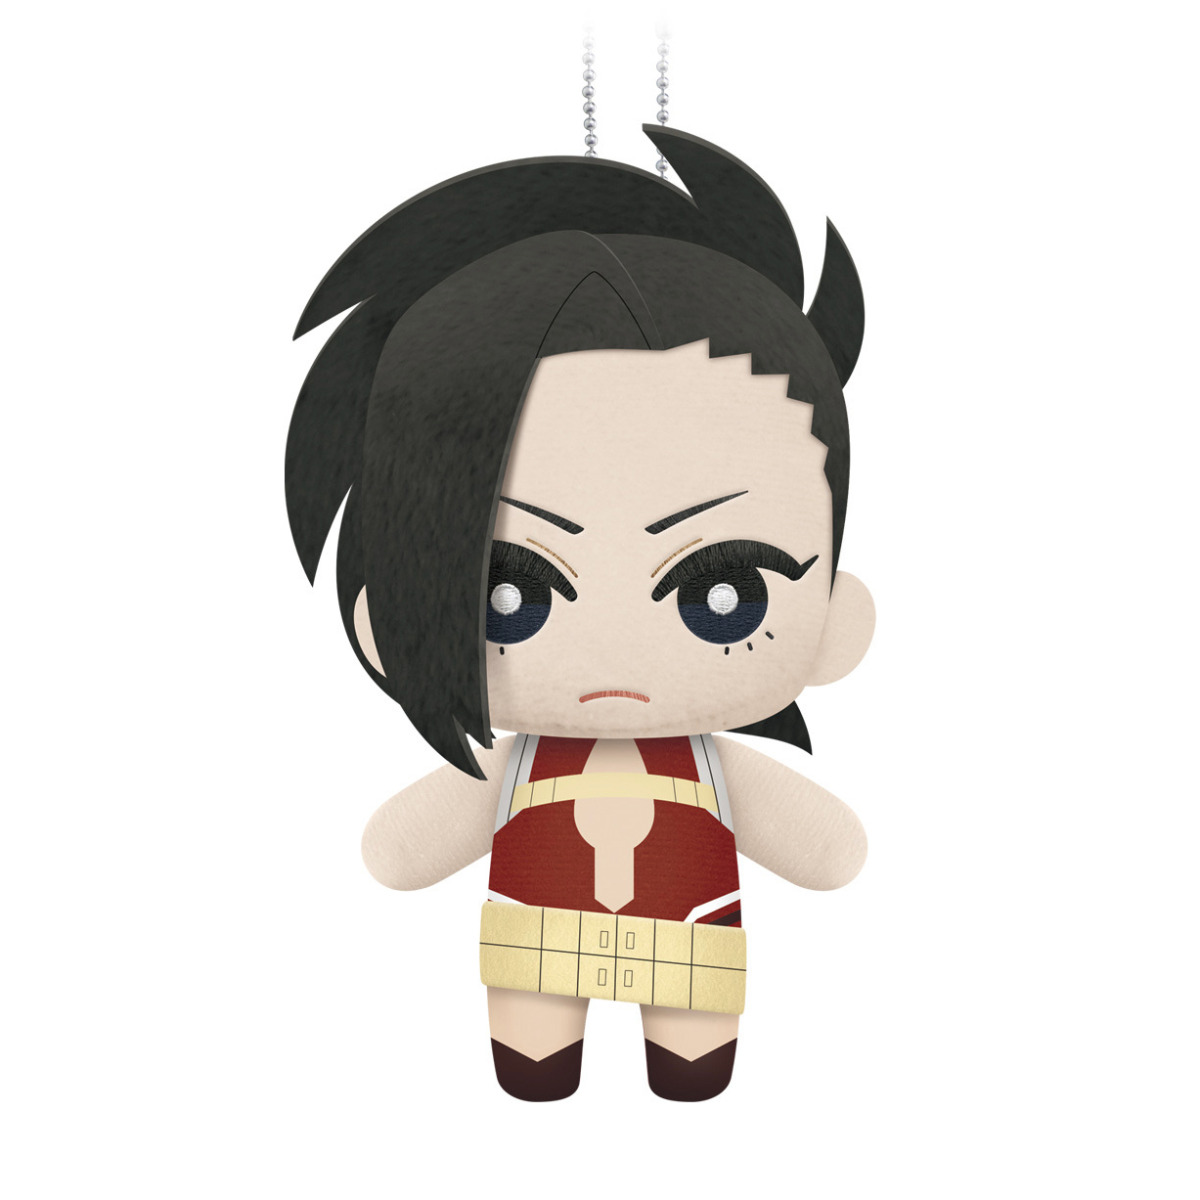 Details About Real Authentic Little Buddy 1703 My Hero Academia 6 Momo Yaoyorozu Plush